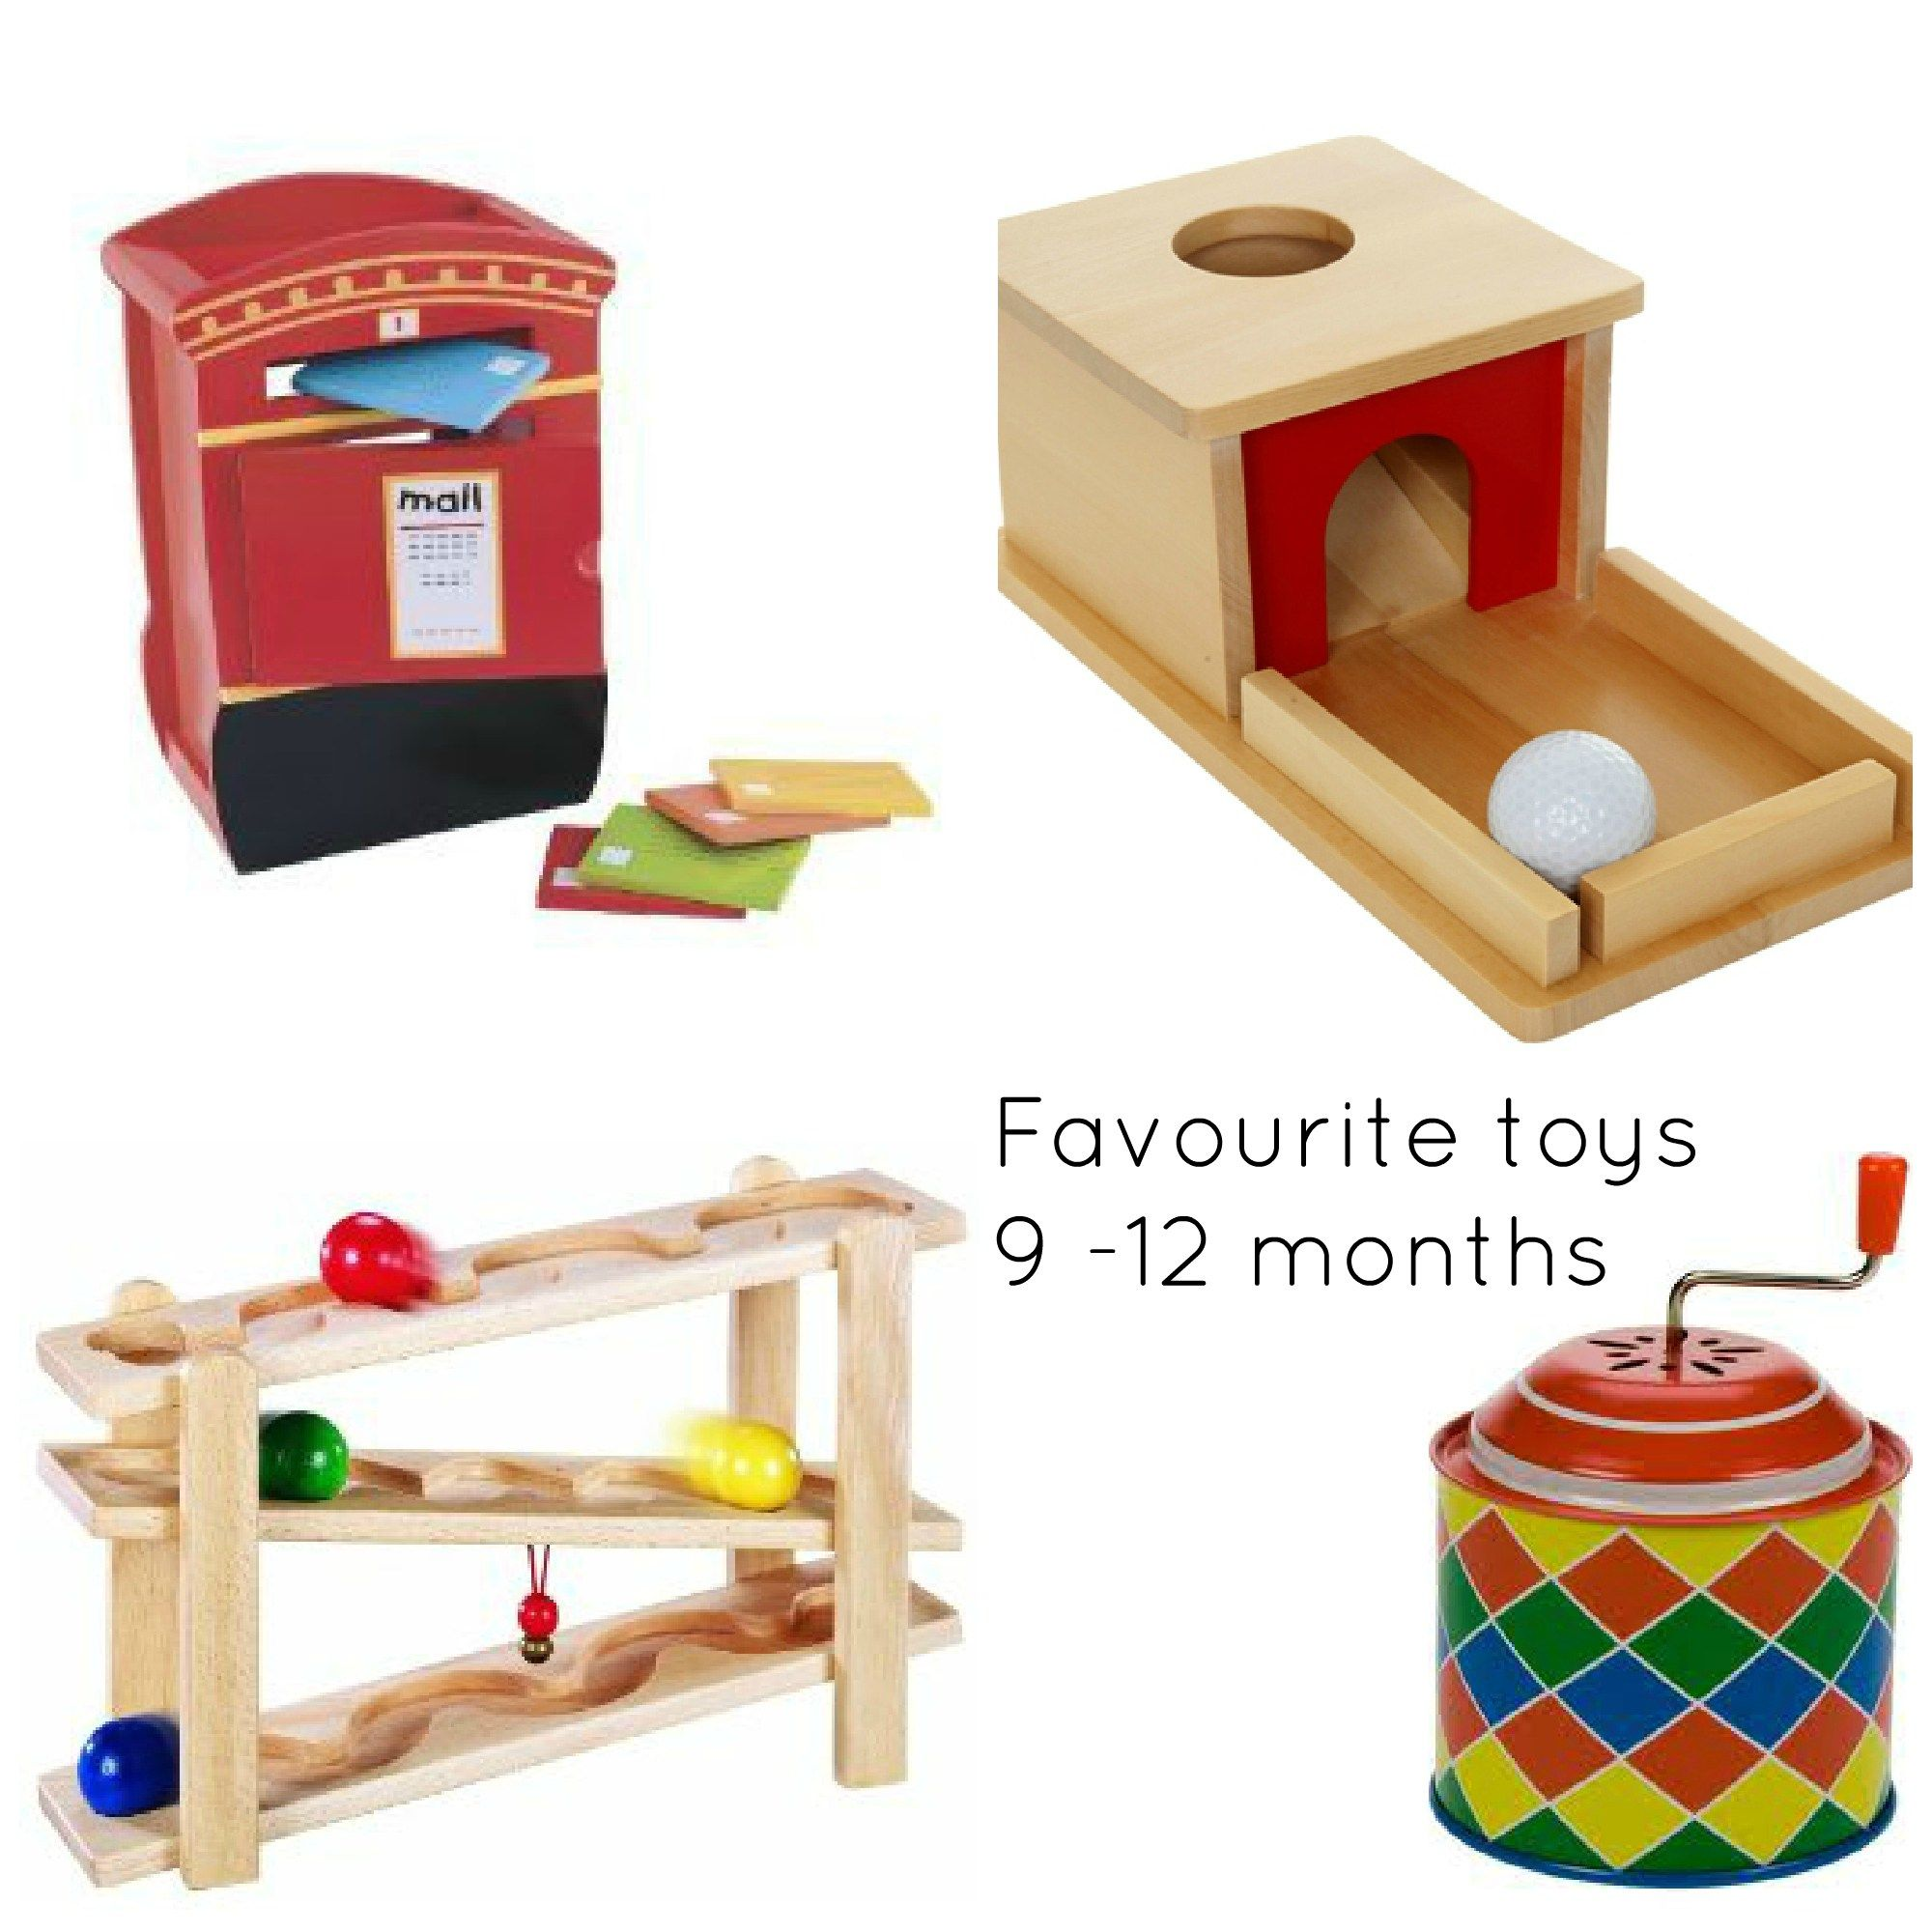 12 Month Olds Toys For Bouncing : Toy recommendations for a month old montessori and